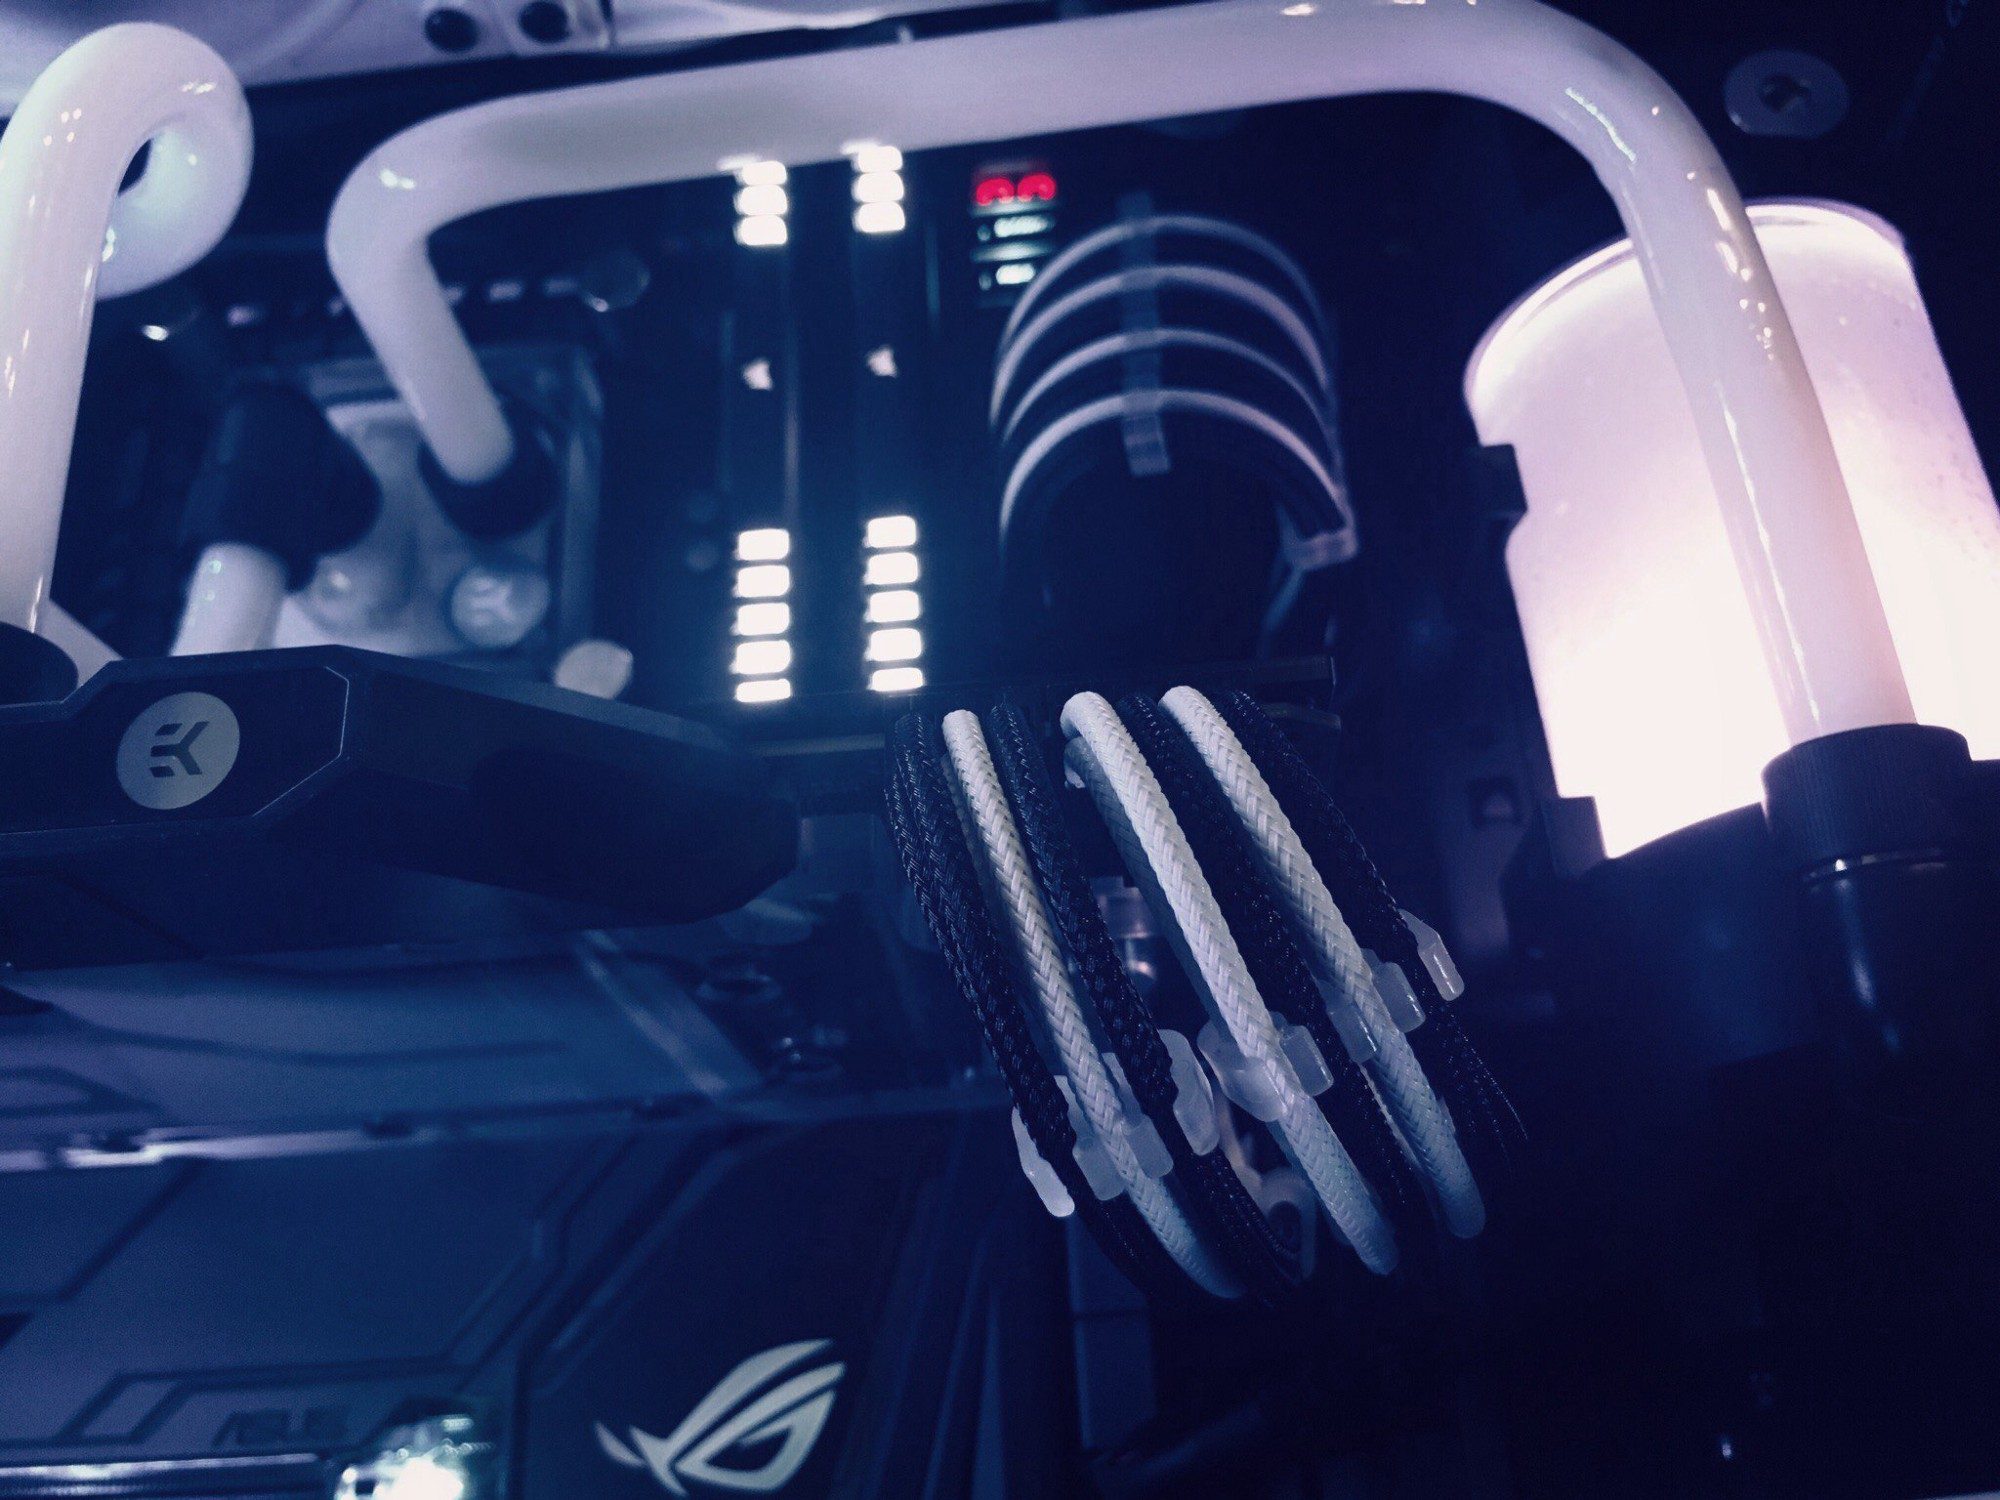 an ultimate beginners guide to pc water cooling james sunderland